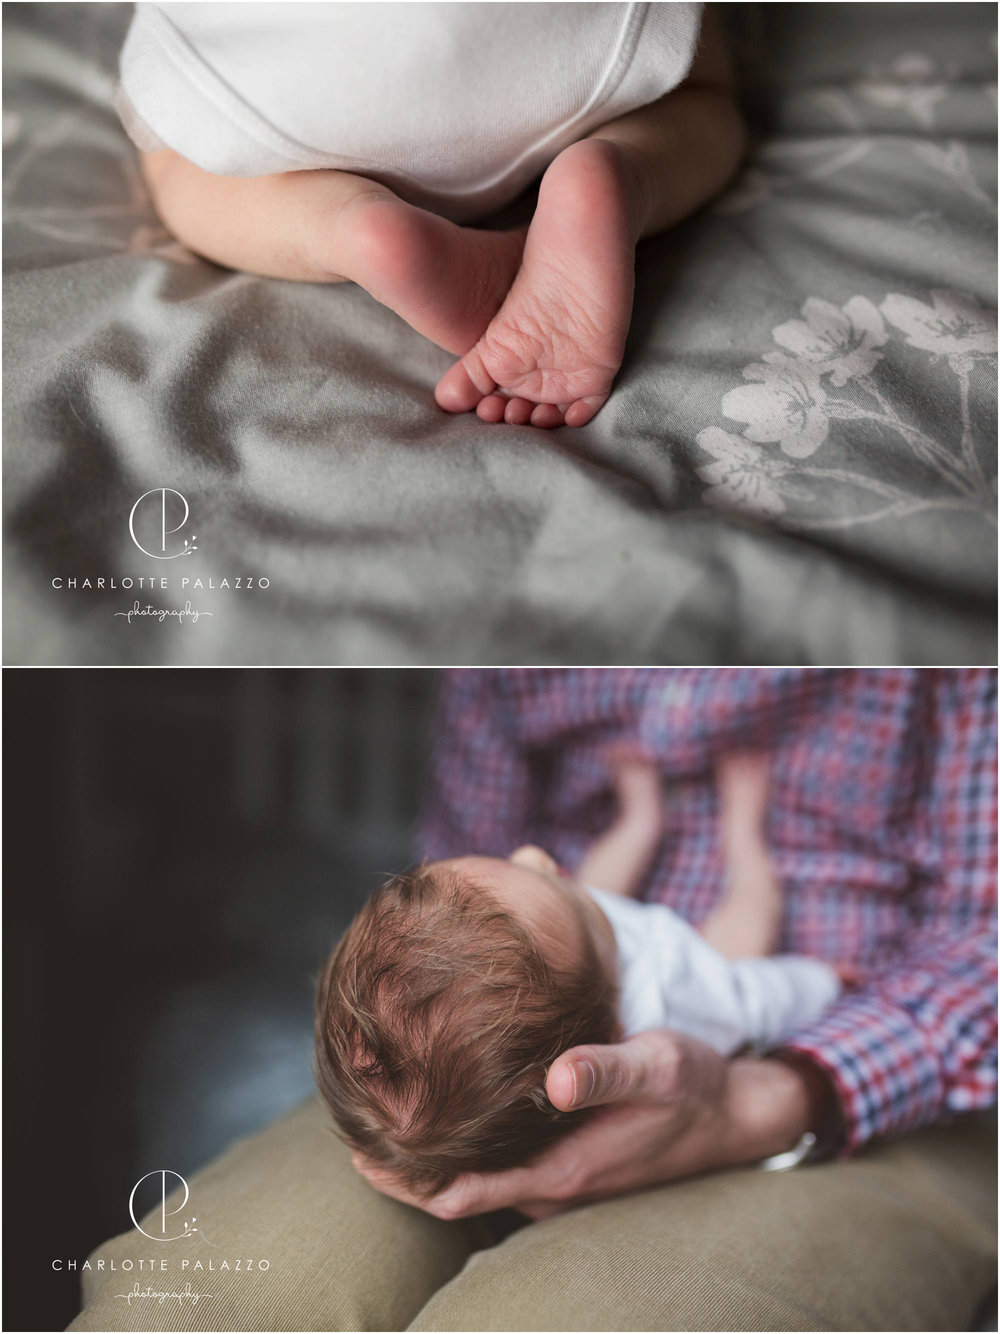 Baby_Cheshire_Wilmslow_Family_Newborn_Photography_Lifestyle_0046.jpg